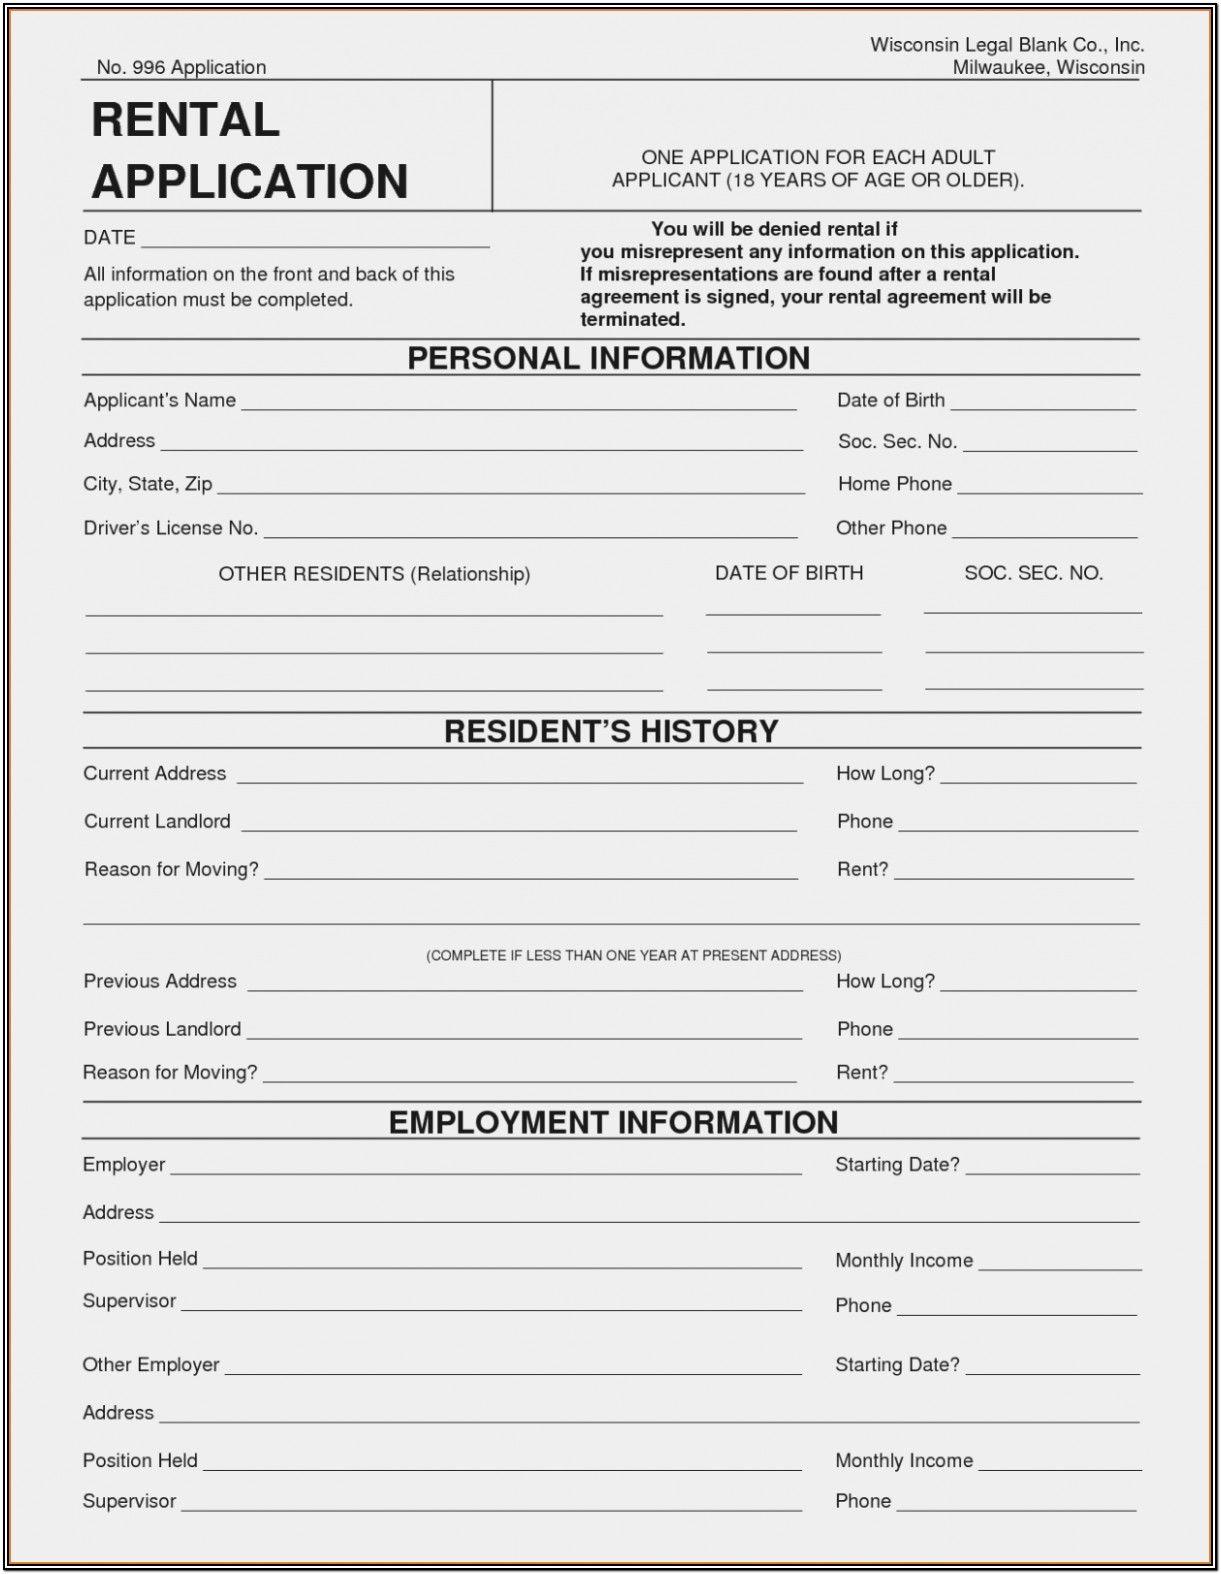 Rental Application Form Free Printable